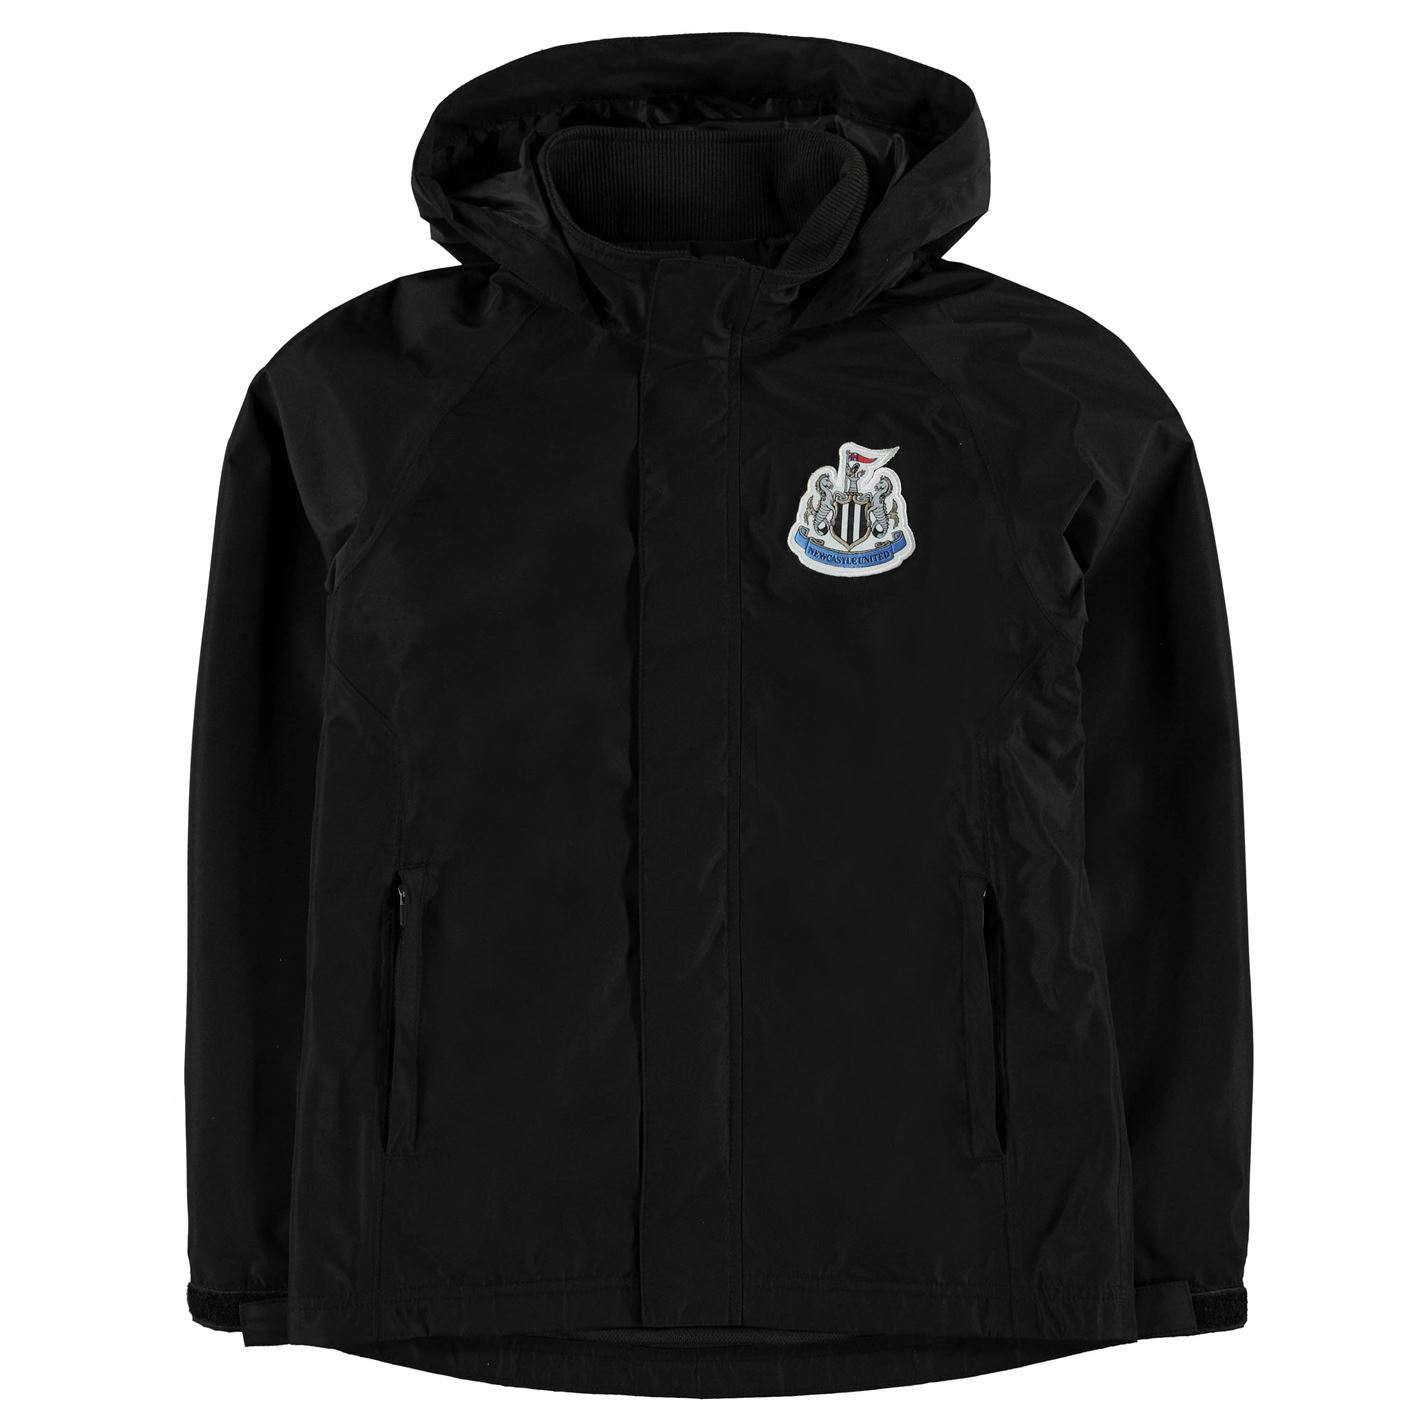 m Kids Boys Newcastle United Rain Jacket Junior Coat Top Long Sleeve Chin